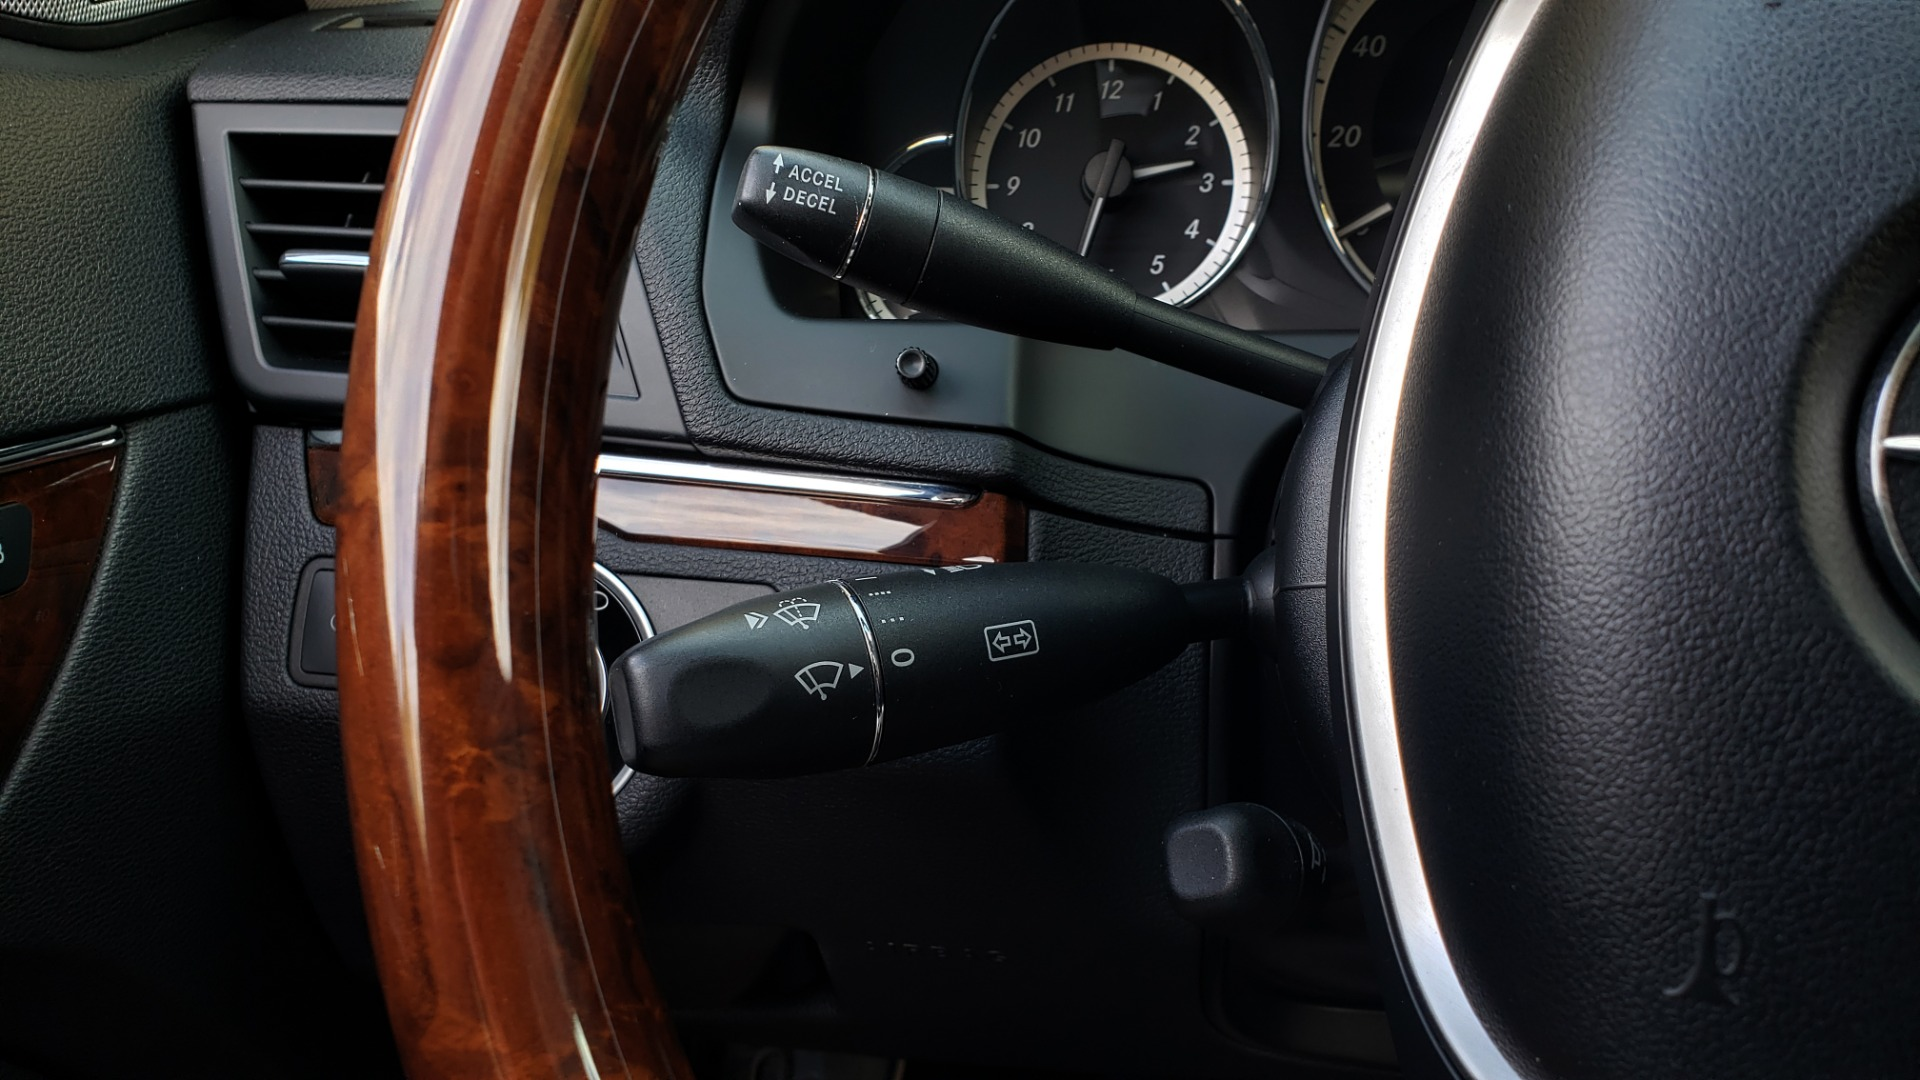 Used 2013 Mercedes-Benz E-CLASS E 350 COUPE PREM / NAV / PANO-ROFF / KEYLESS-GO / REARVIEW for sale Sold at Formula Imports in Charlotte NC 28227 43